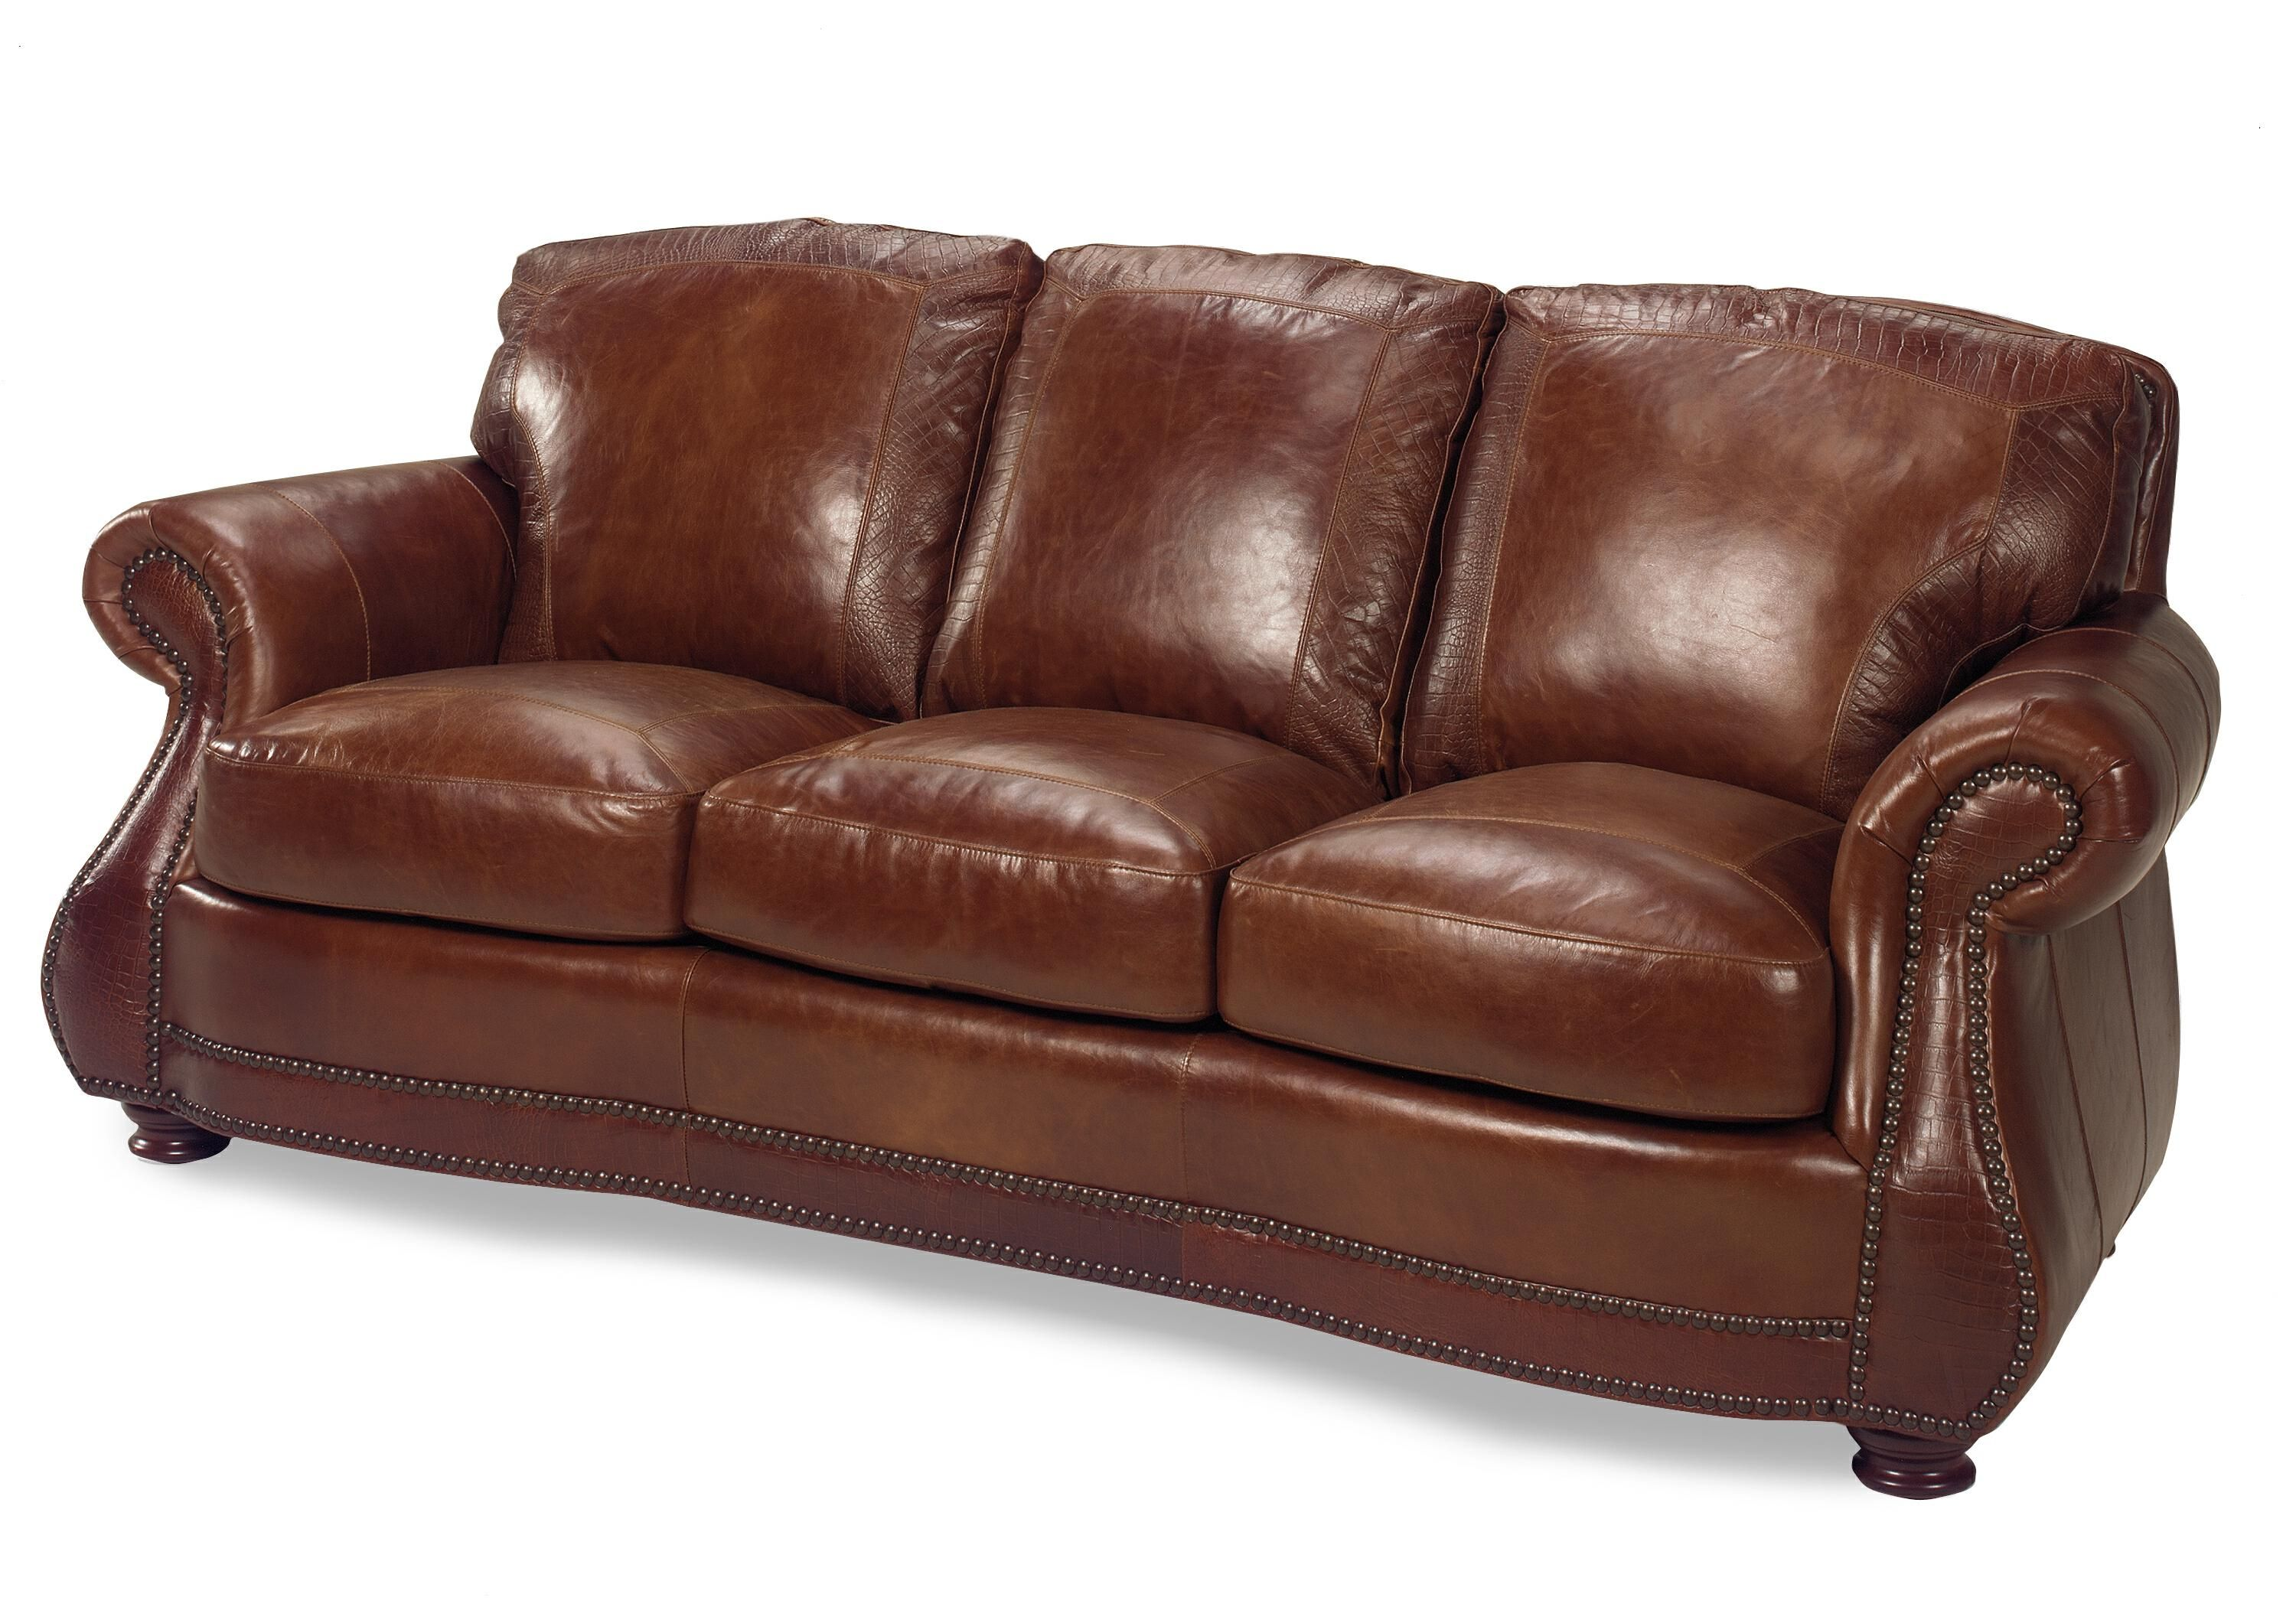 Pin By Derrick Summers On Furniture Leather Sofa Oak Furniture Weathered Furniture